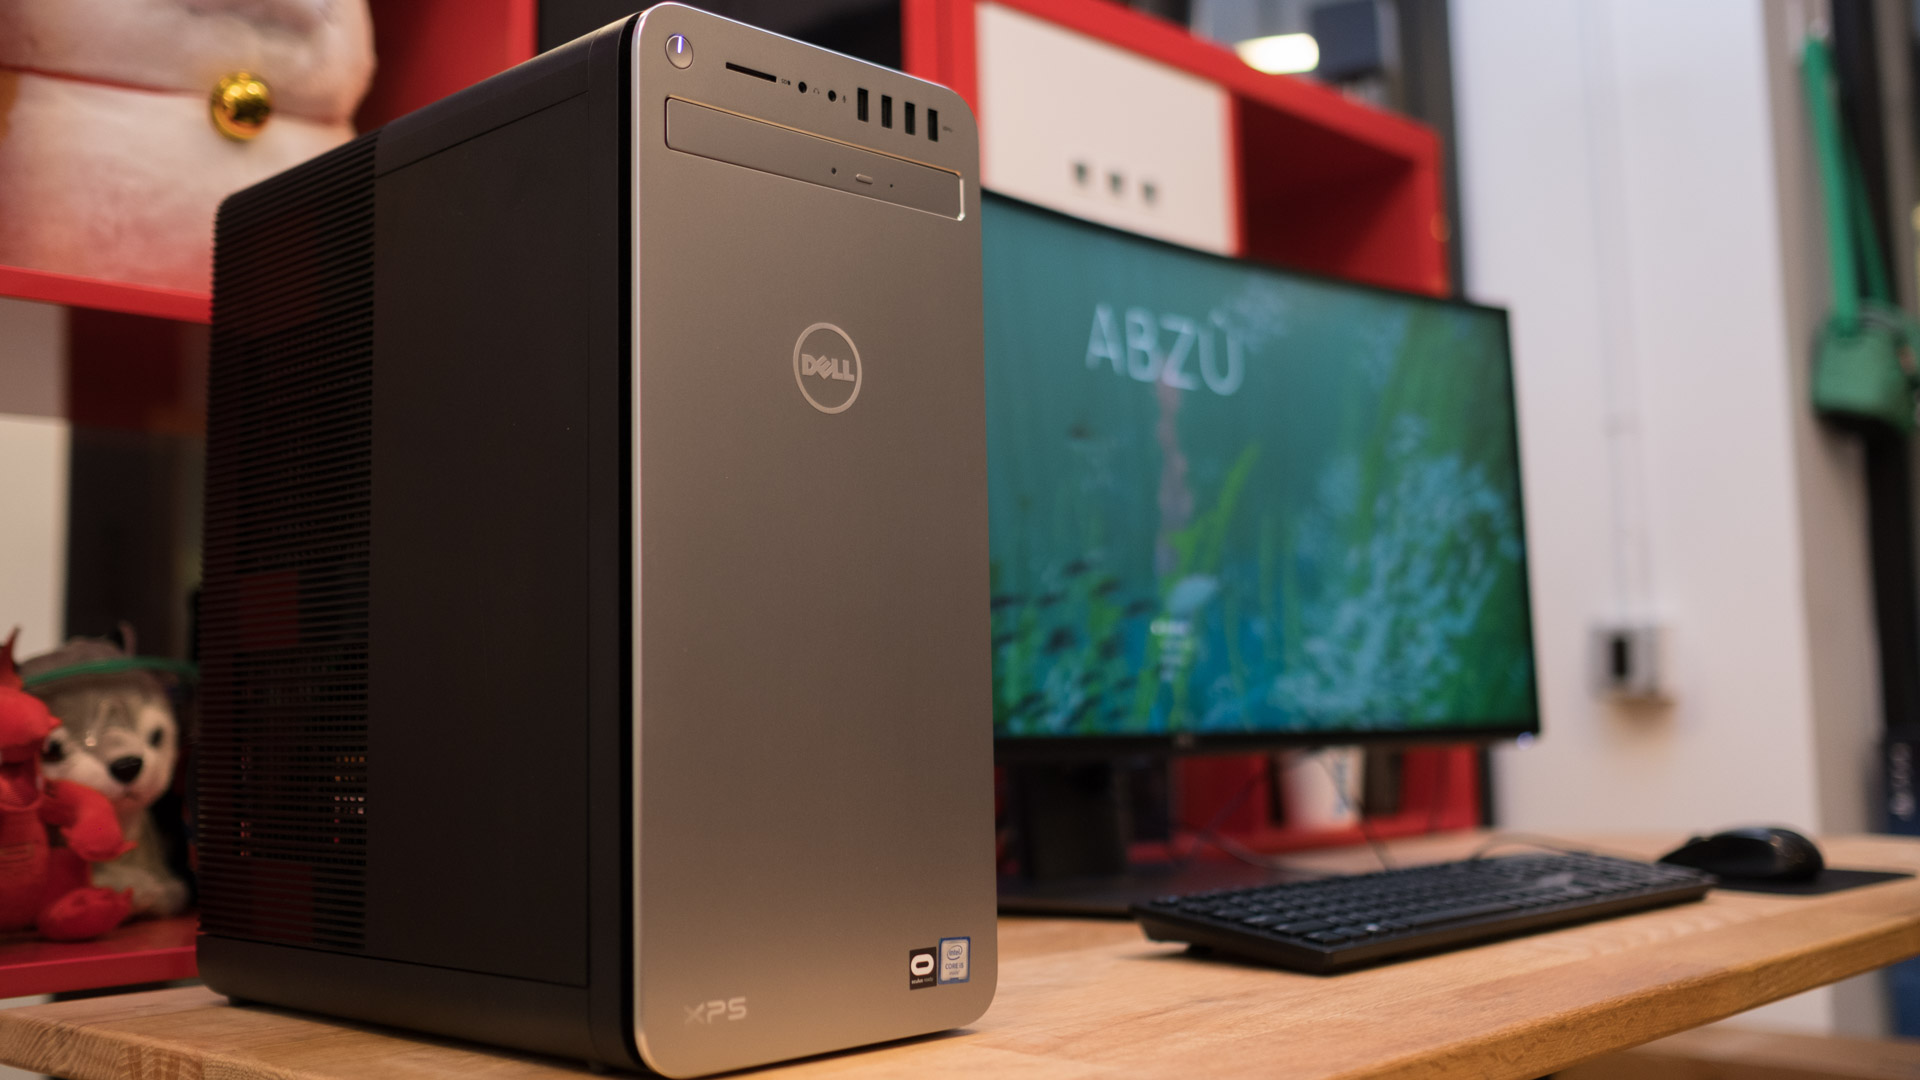 Best desktop deals - Dell Reveals 2017 Black Friday And Cyber Monday Deals Available Now Indie Obscura